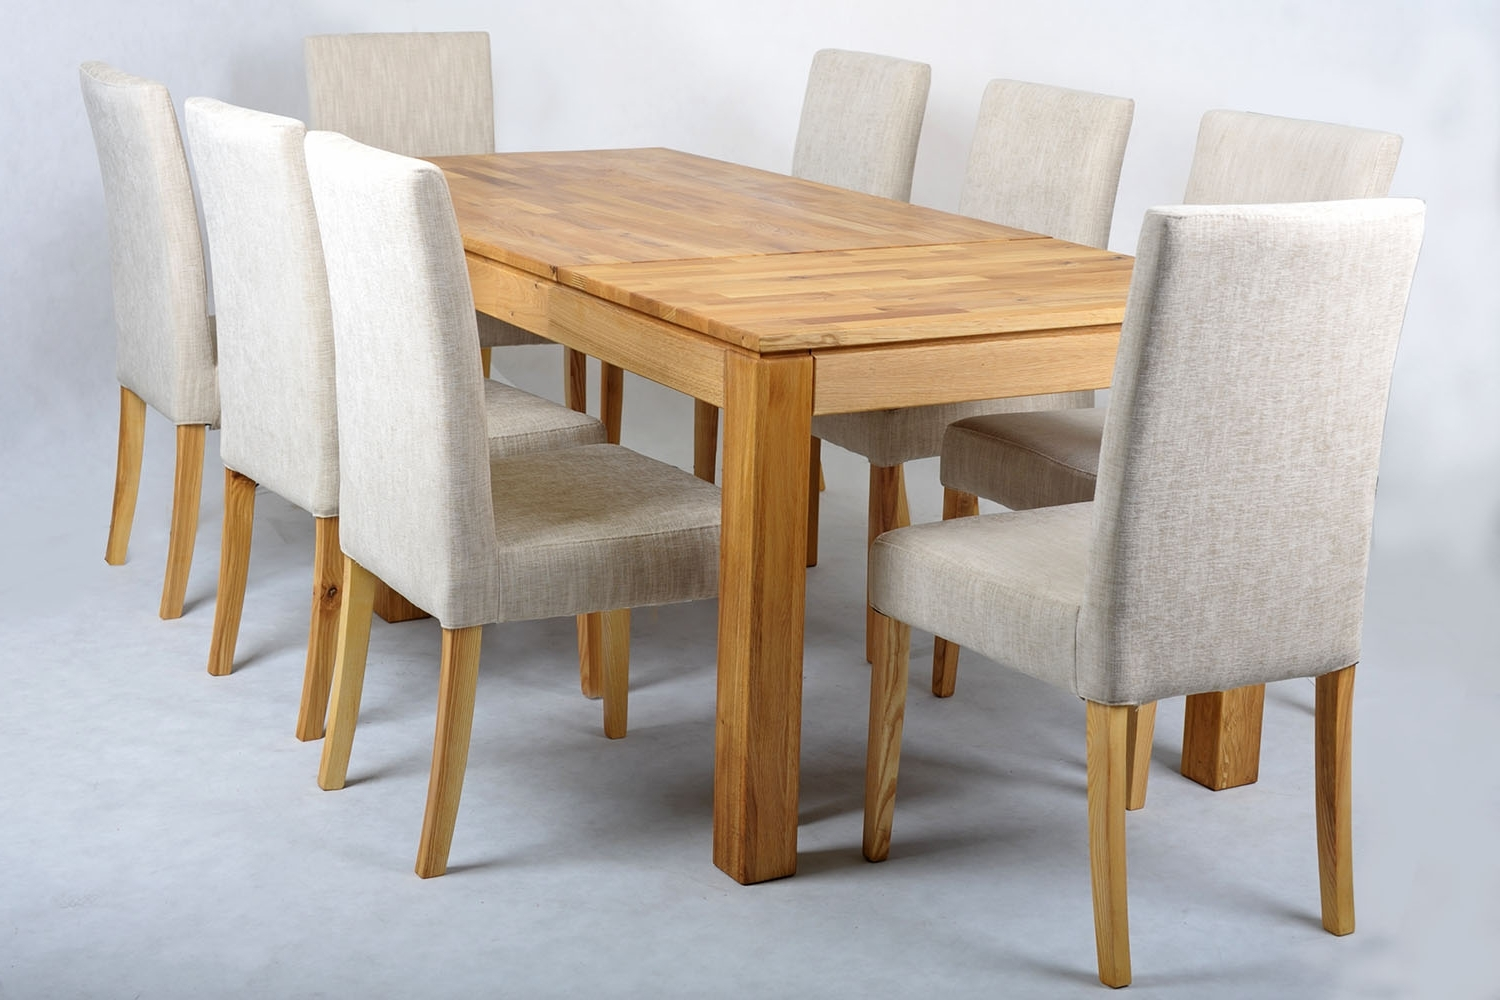 Most Popular Oak Extending Dining Table And Fabric Chairs Set Ivory Stainless Throughout Oak Extendable Dining Tables And Chairs (View 6 of 25)